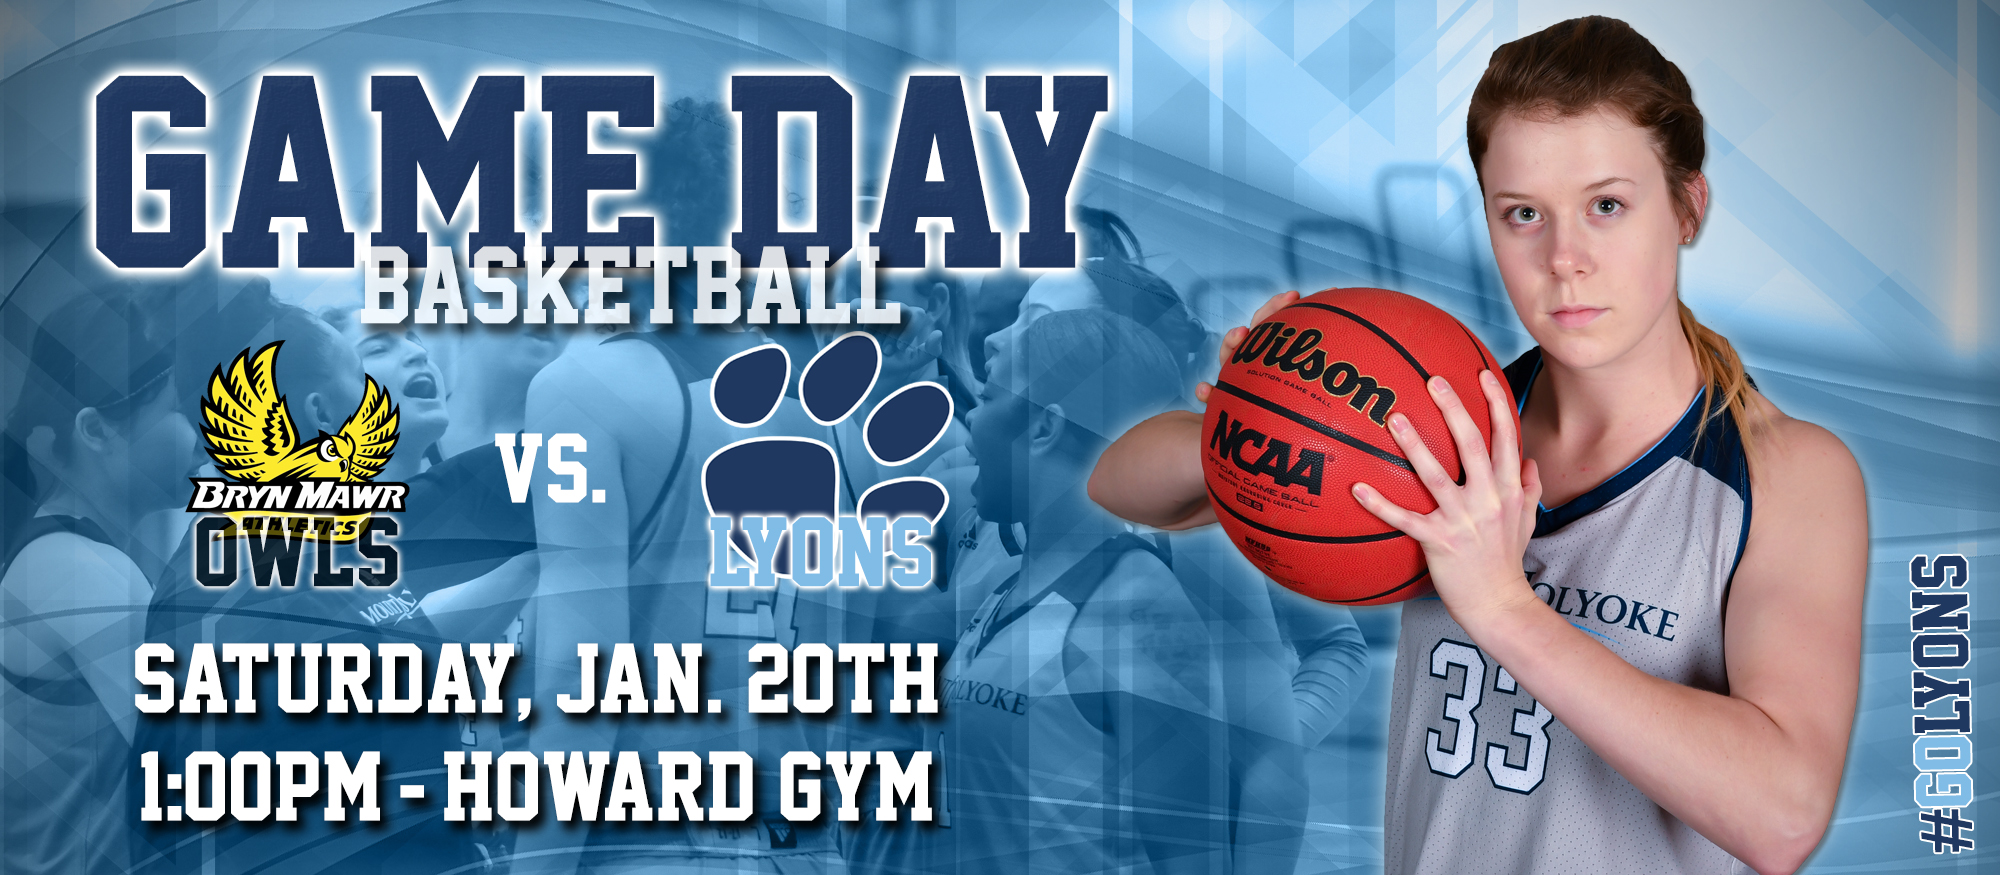 Gameday graphic promoting the Saturday, January 20th basketball game between Bryn Mawr and Mount Holyoke at 1pm at the Mildred S. Howard Gym.